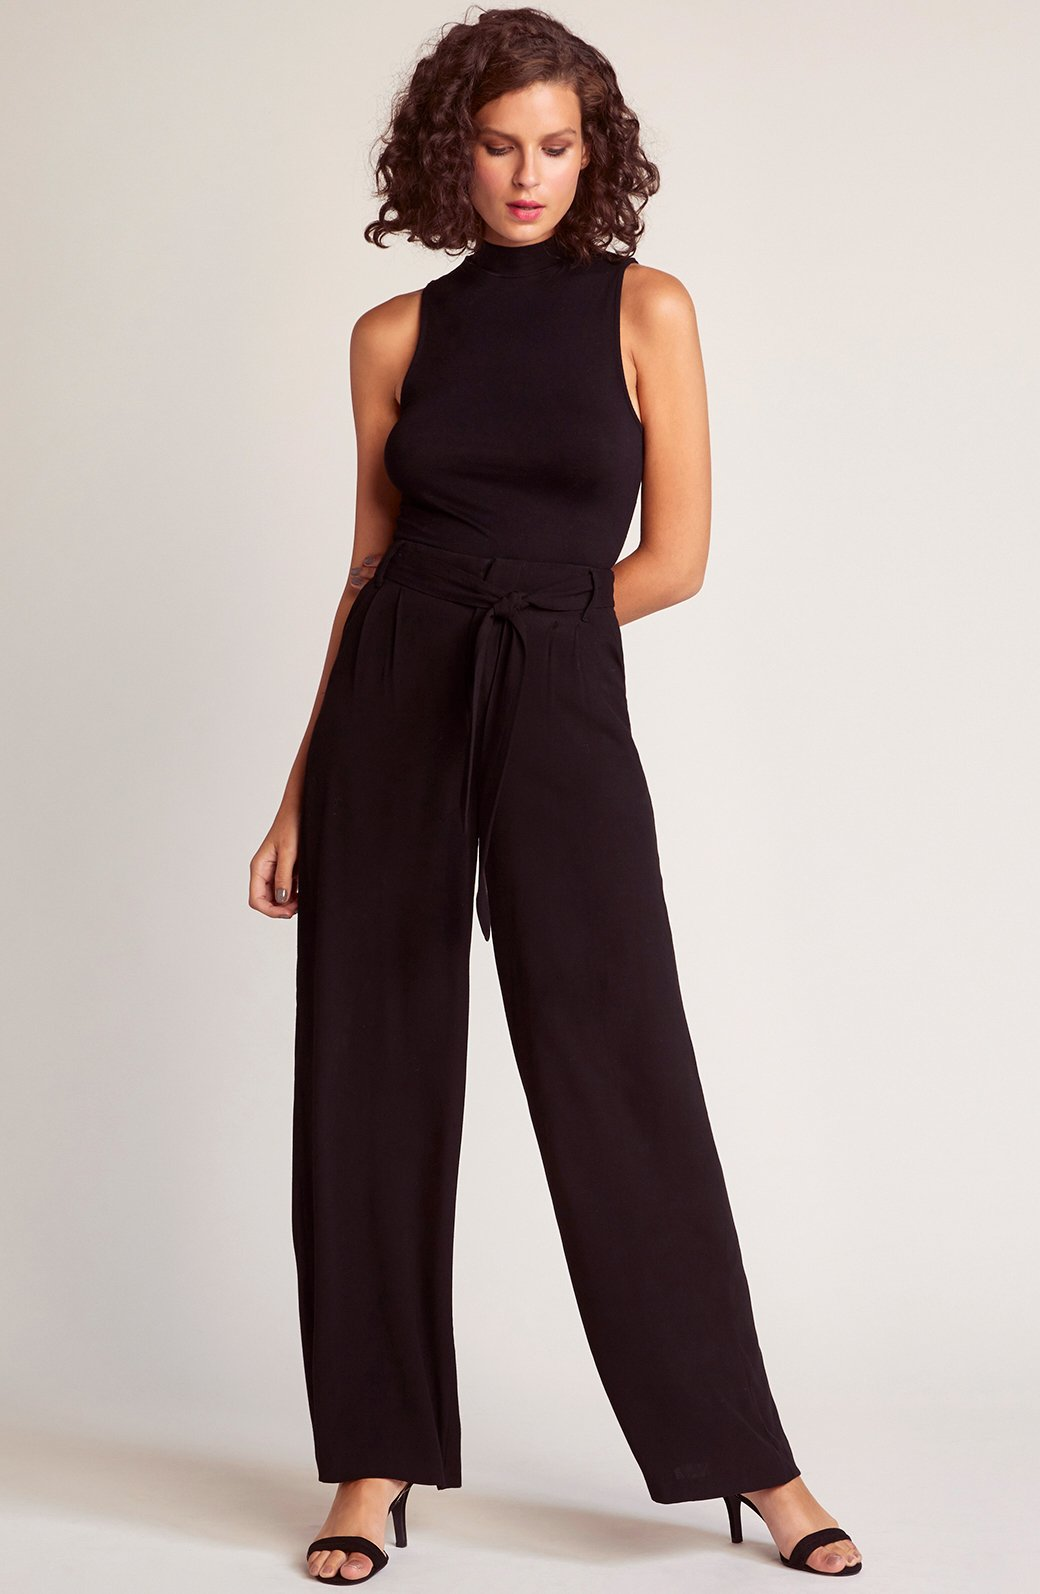 Wide At Heart Pants - Refinery